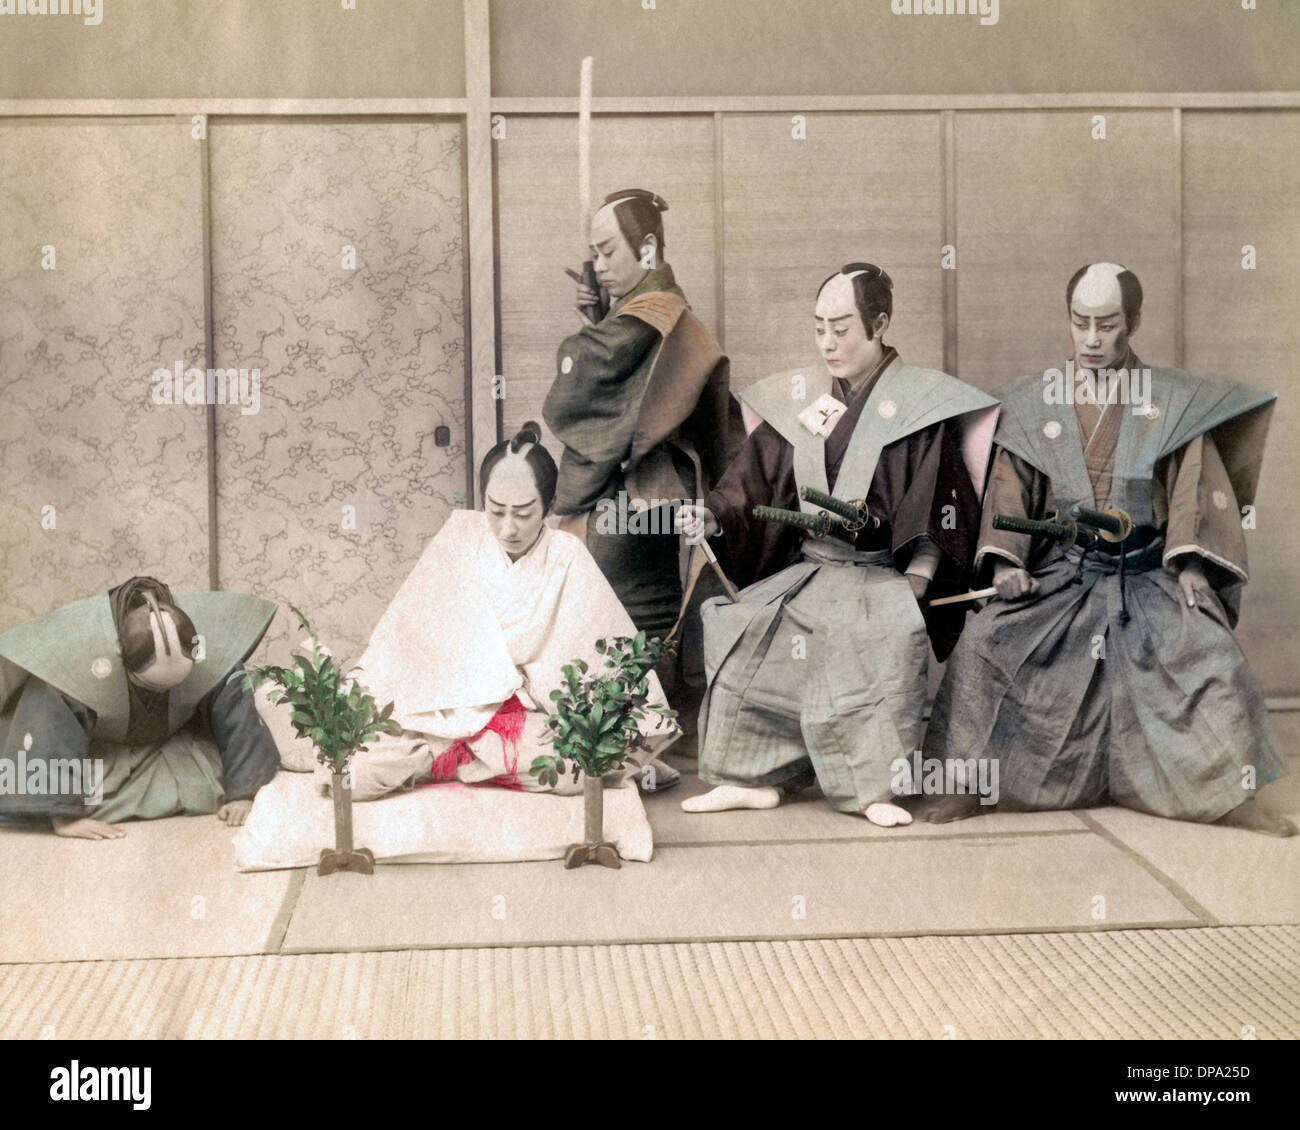 Seppuku Stock Photos & Seppuku Stock Images - Alamy